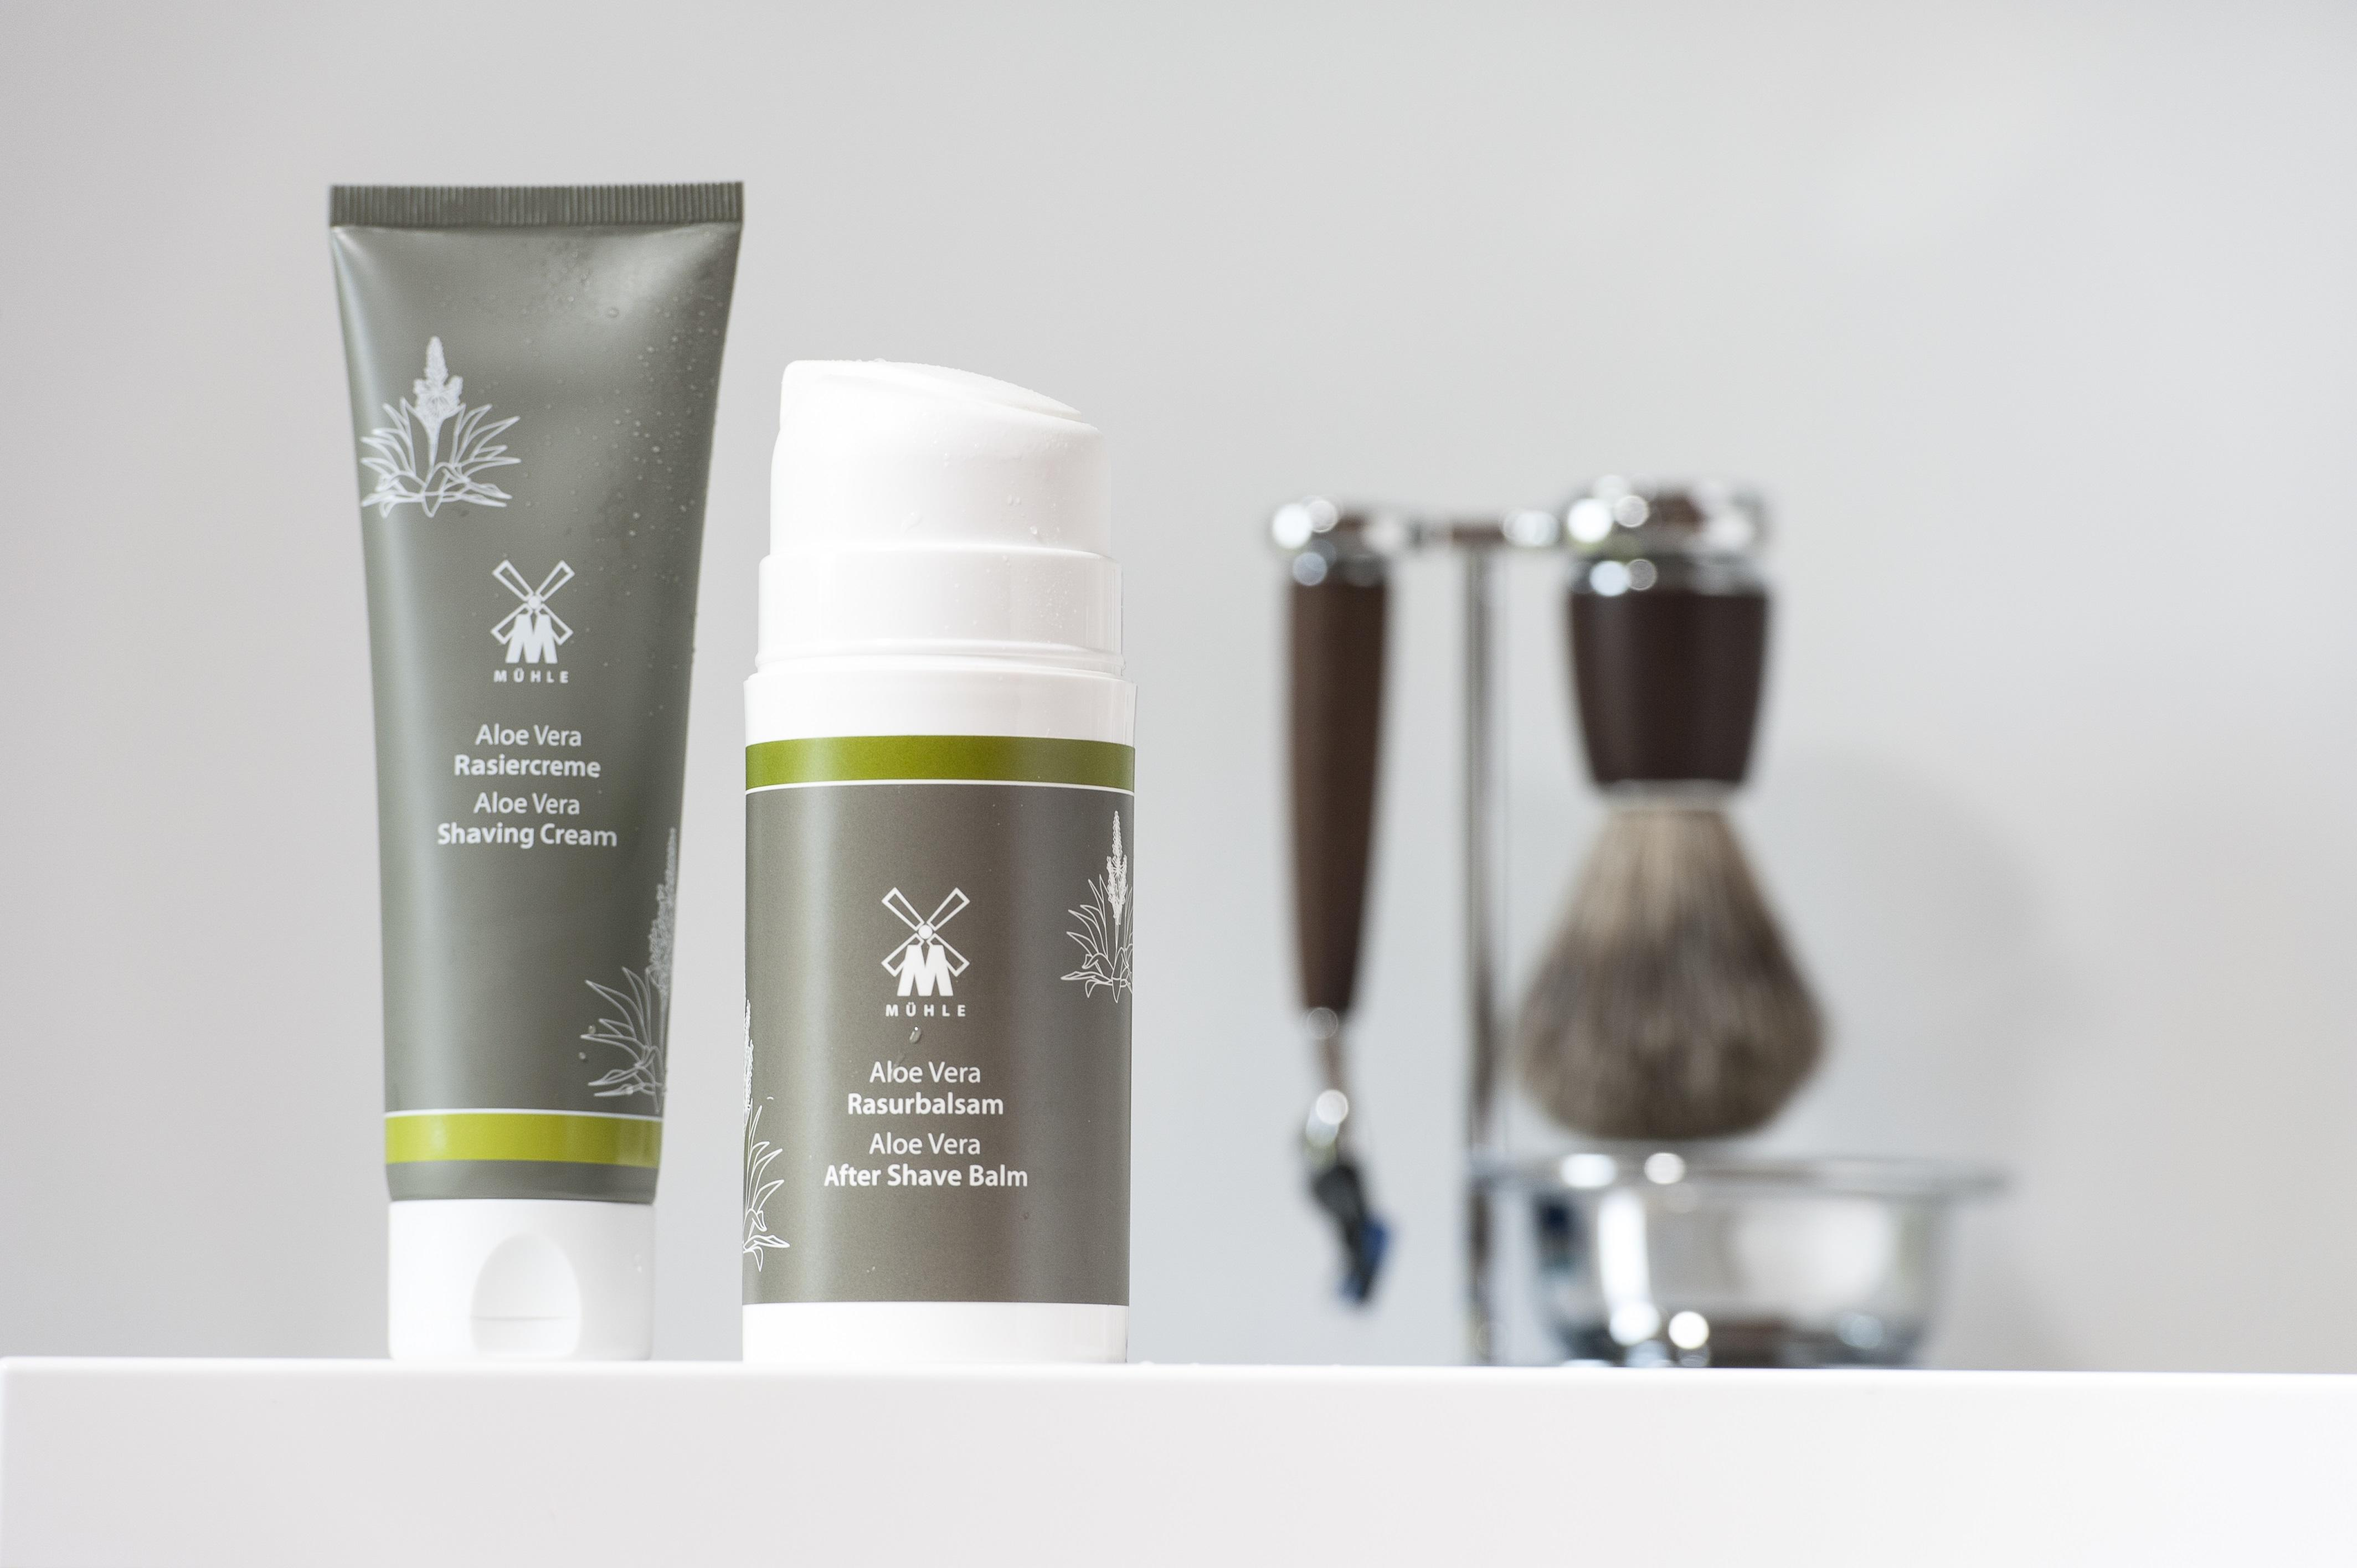 MÜHLE Aloe Vera Aftershave Balm and Shaving Cream with Rytmo Steamed Ash shaving set